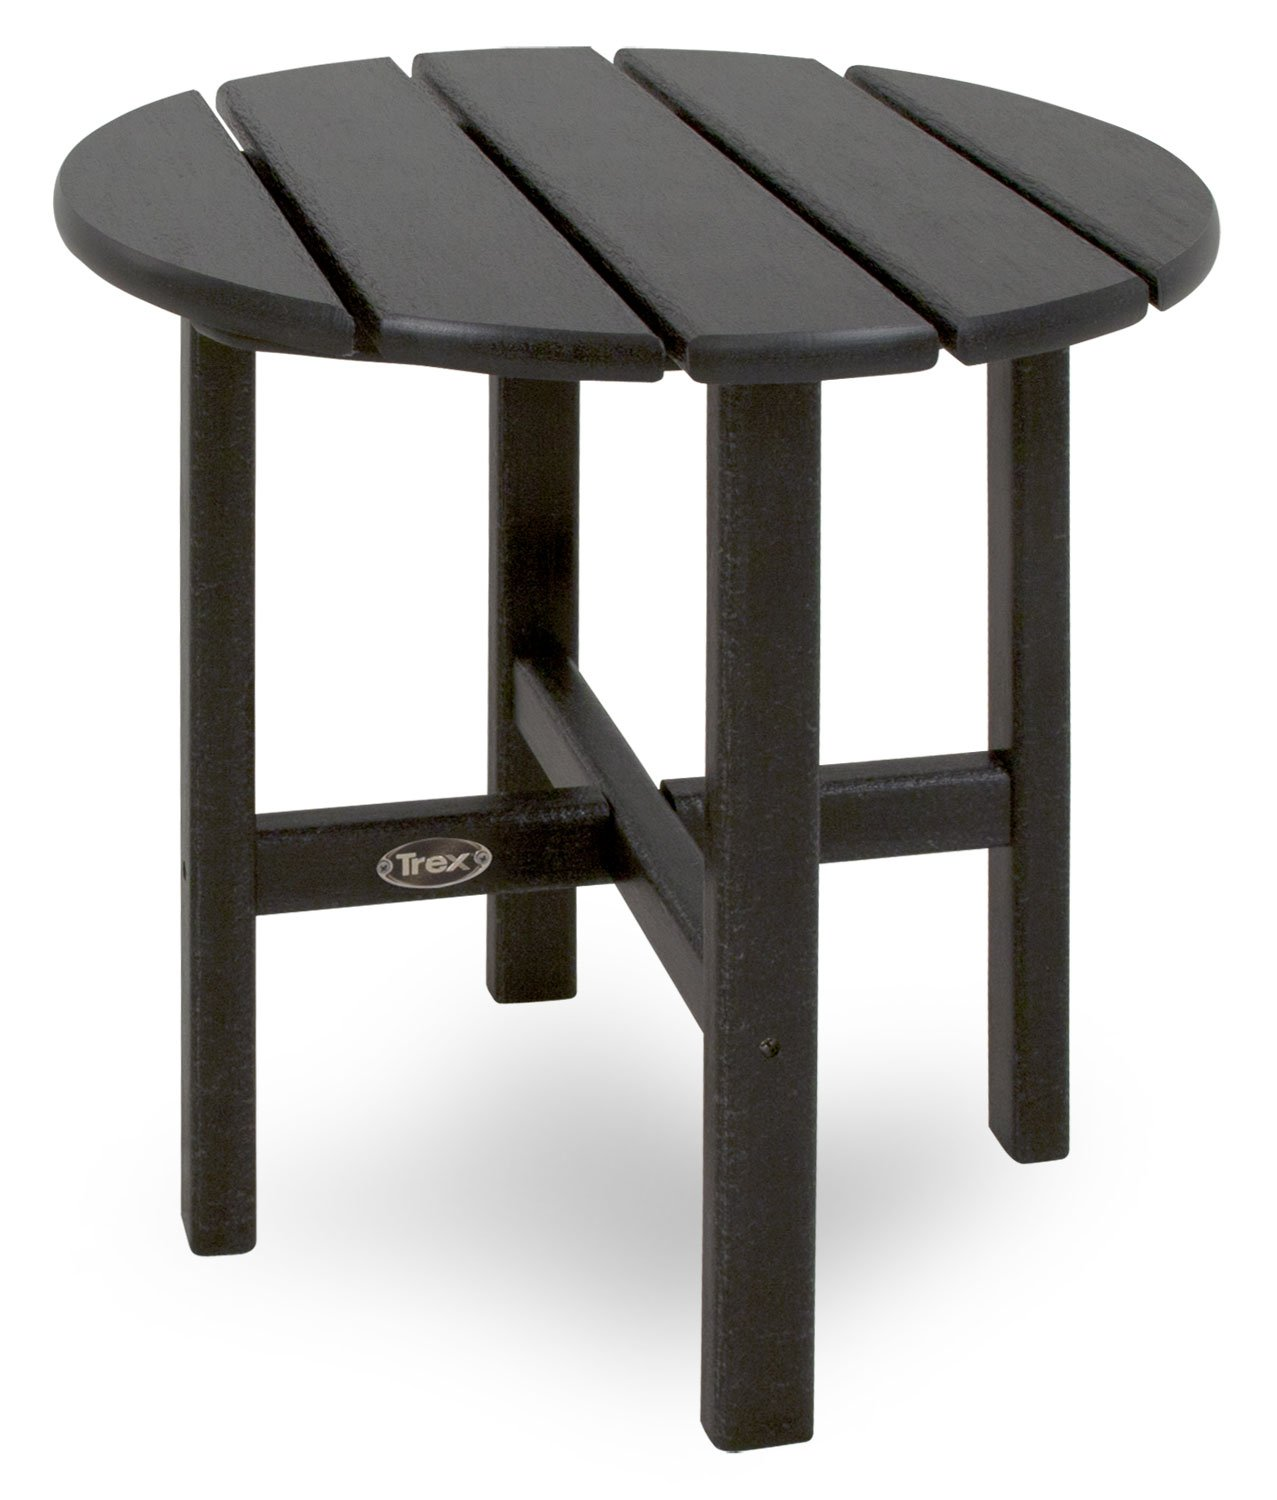 Trex Outdoor Furniture Cape Cod Round 18-Inch Side Table, Charcoal Black